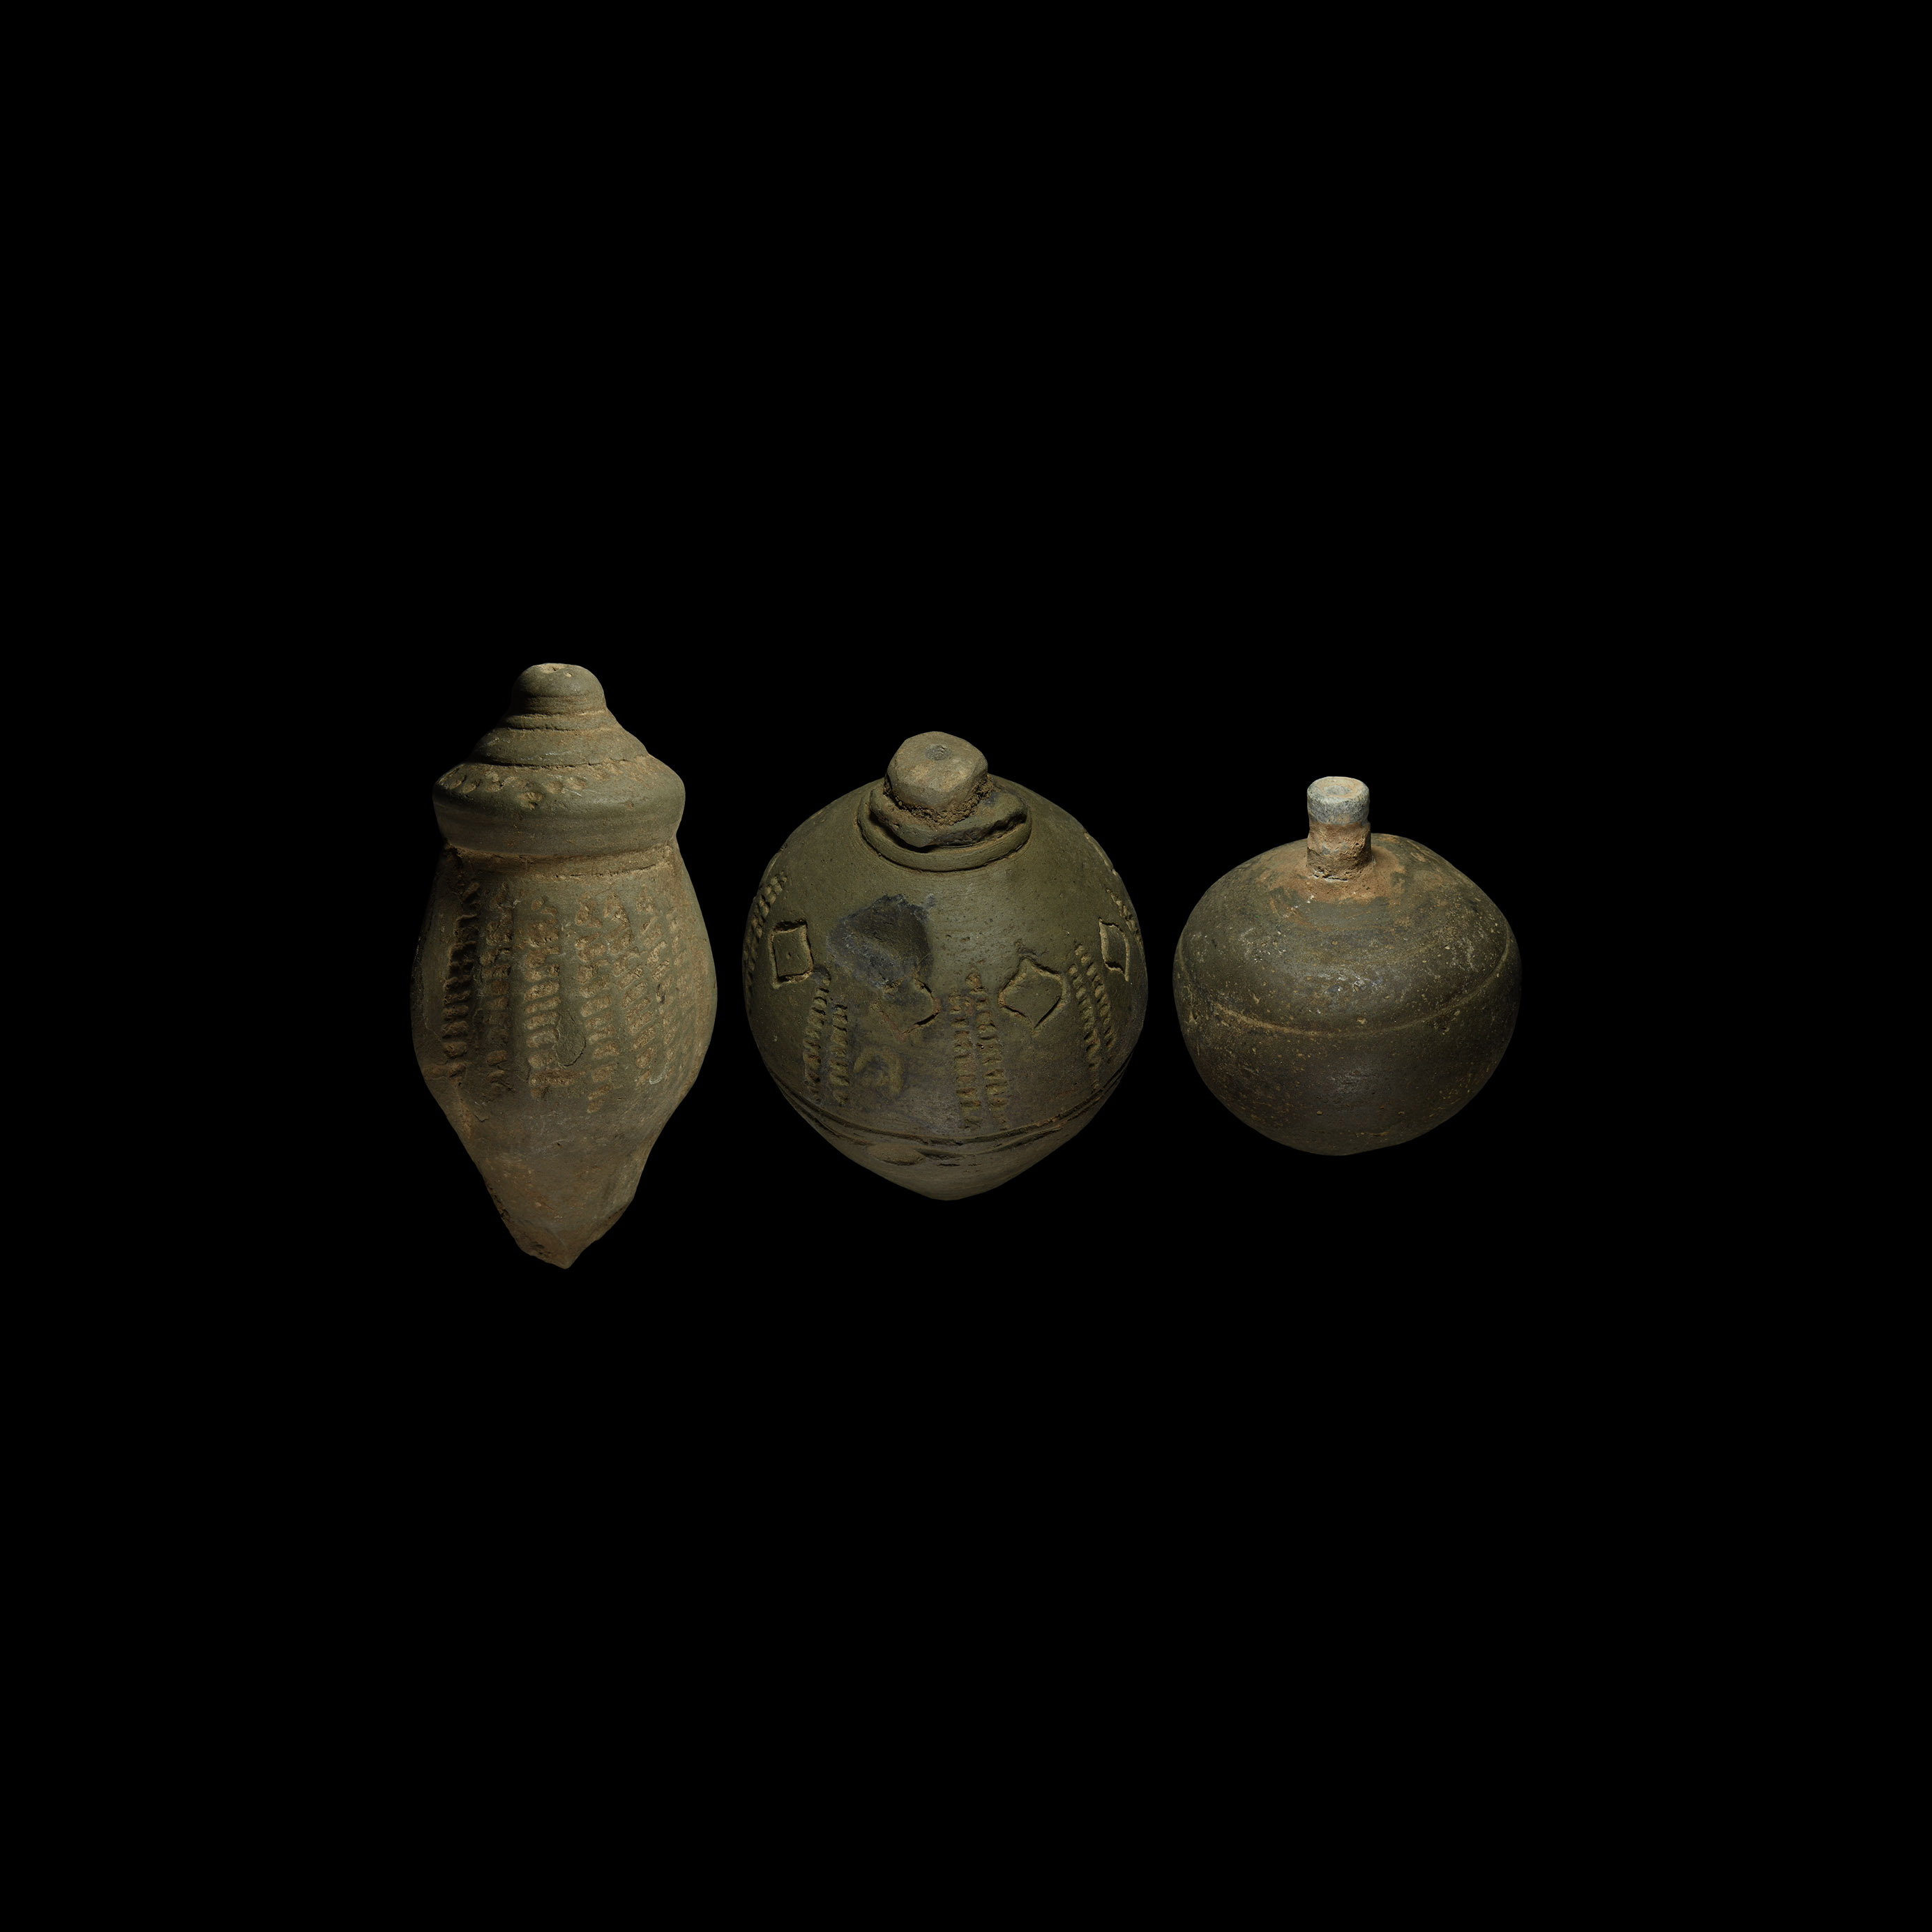 Byzantine Greek Fire Fire Bomb or Hand Grenade Group